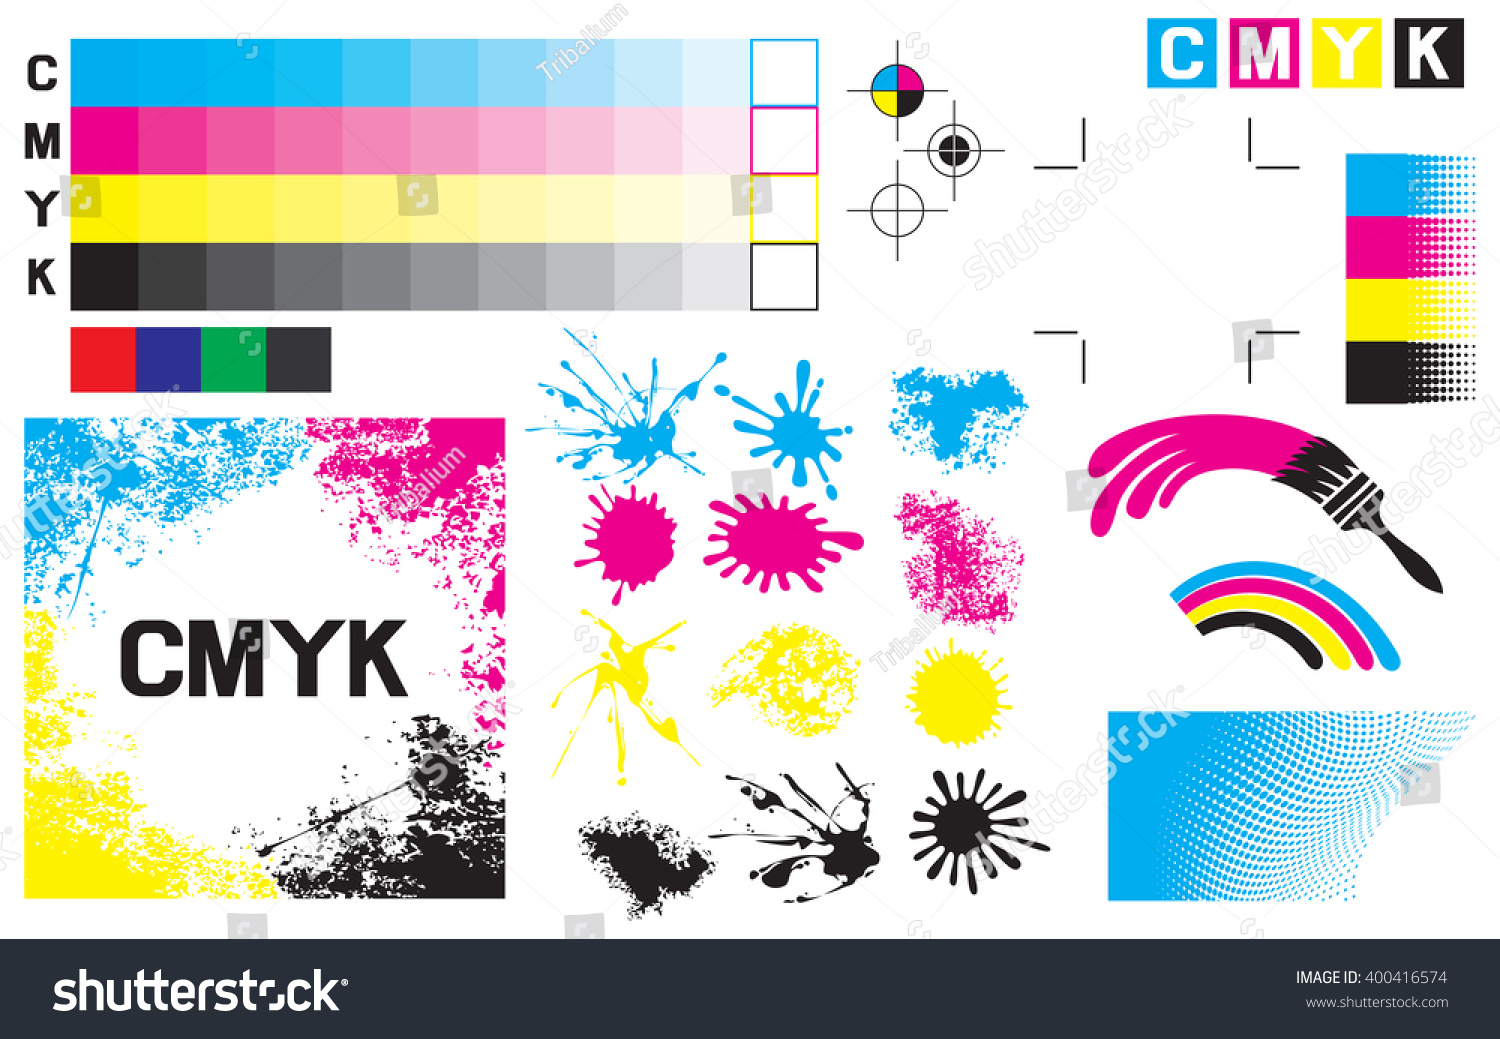 Color printing test - Cmyk Press Marks Printing Color Test